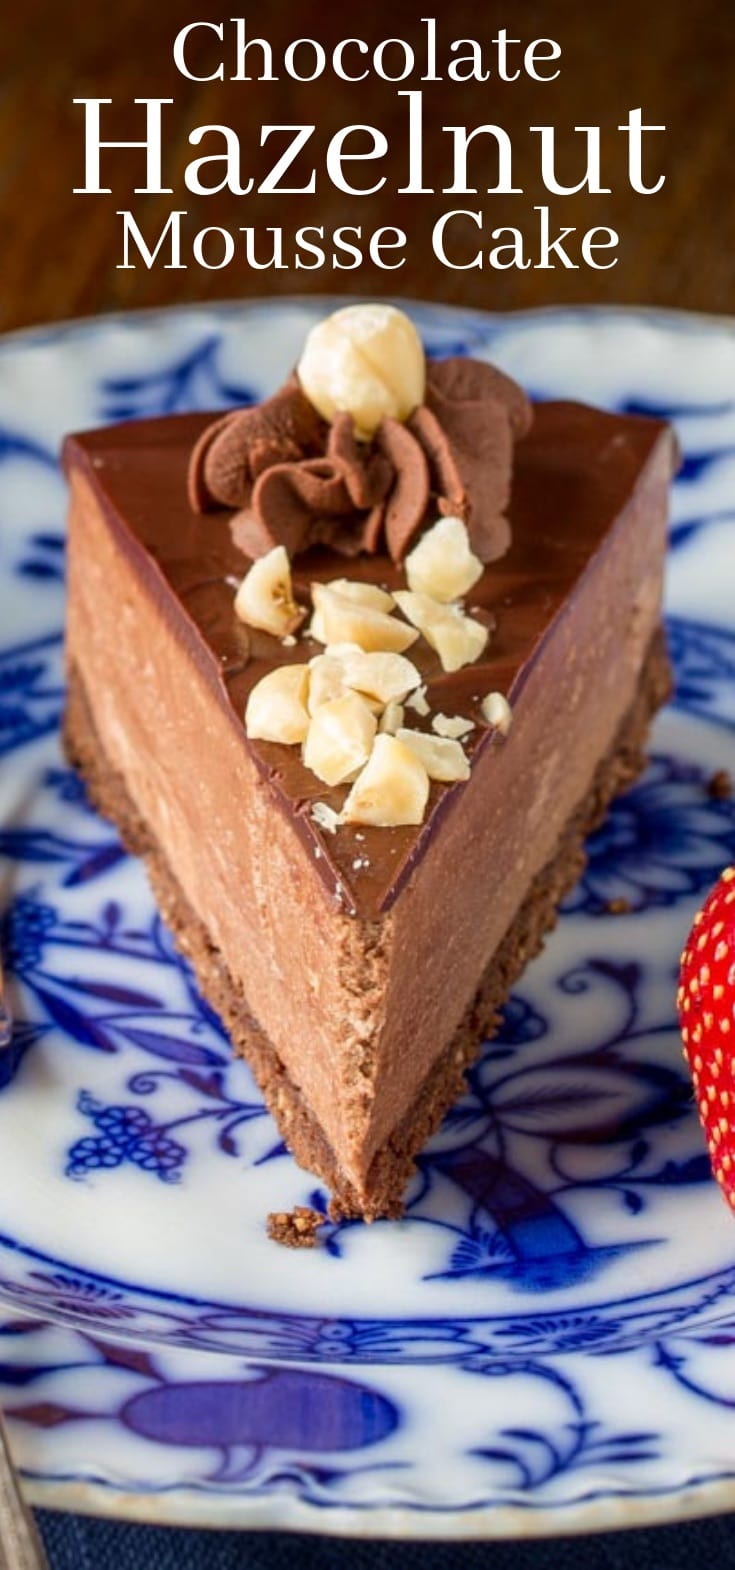 A slice of chocolate hazelnut mousse cake with chopped nuts on top